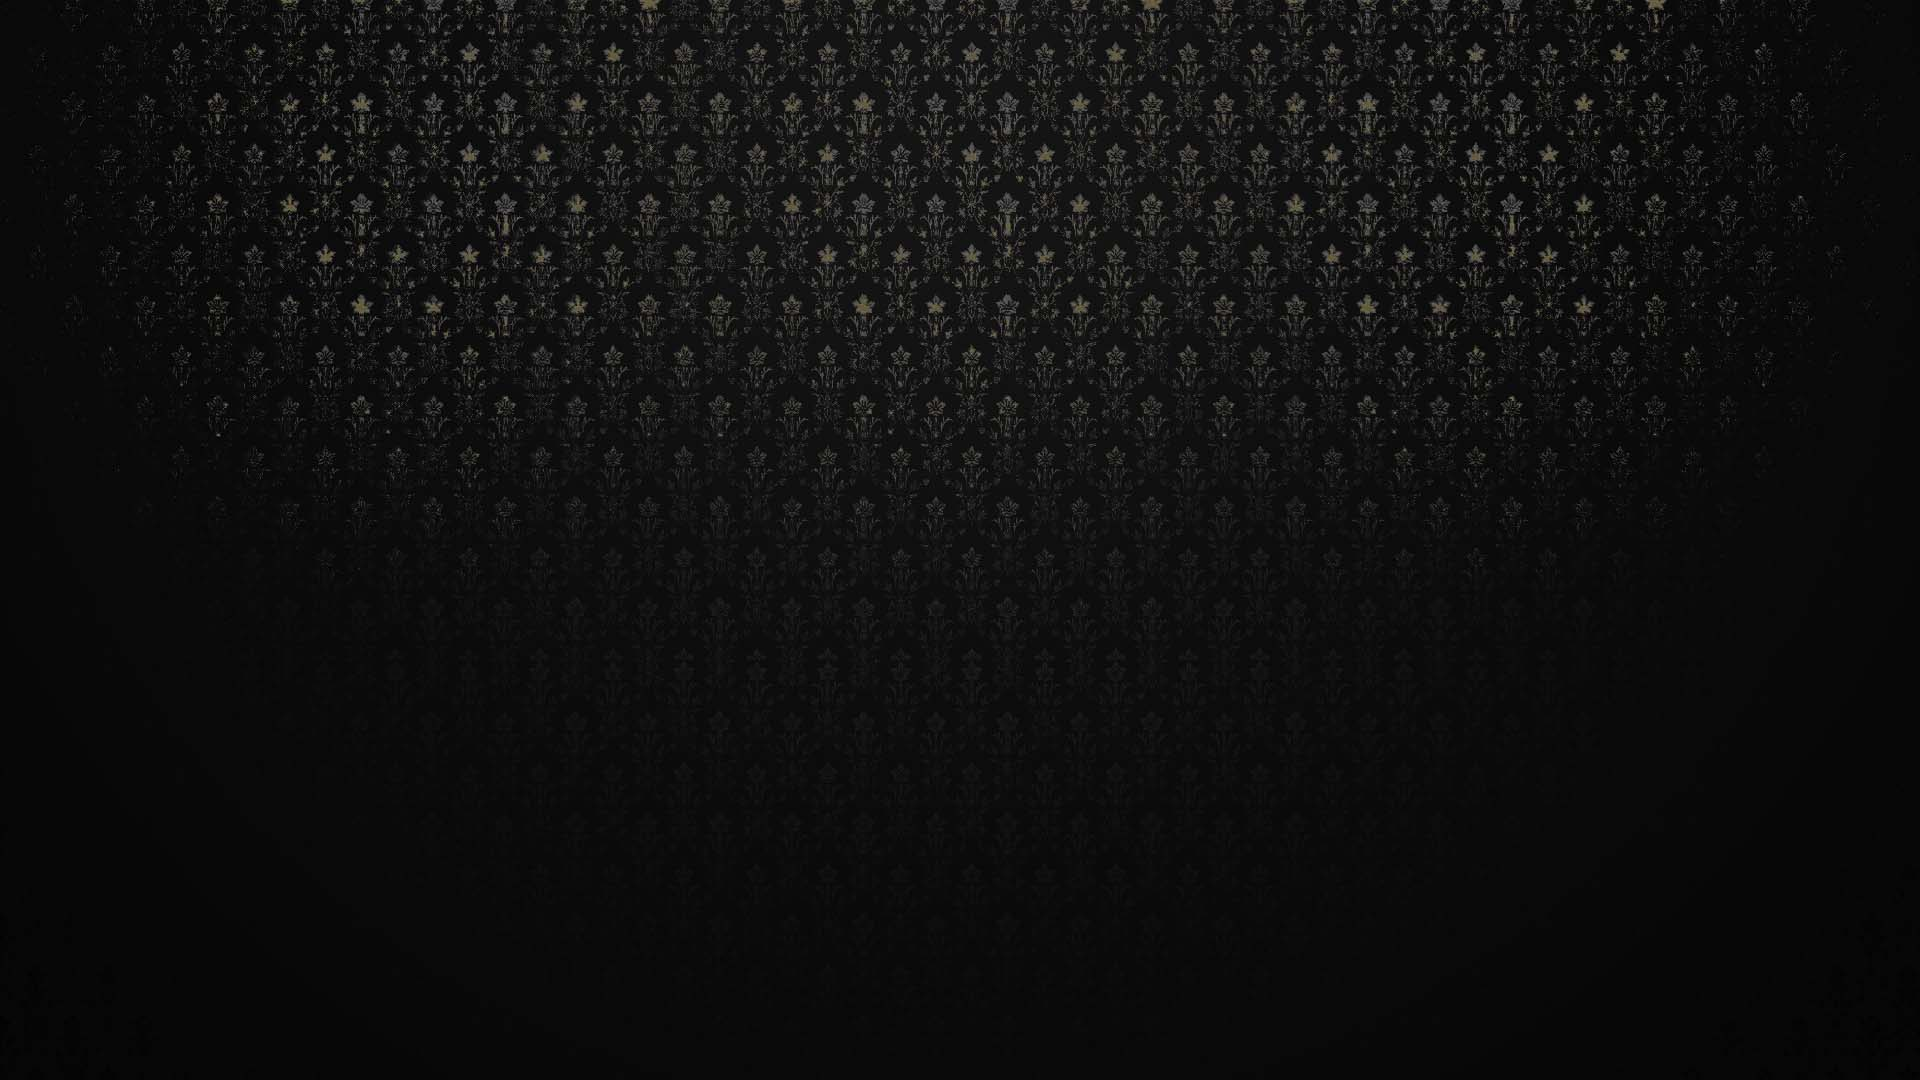 47 Free Black Wallpaper Downloads On Wallpapersafari